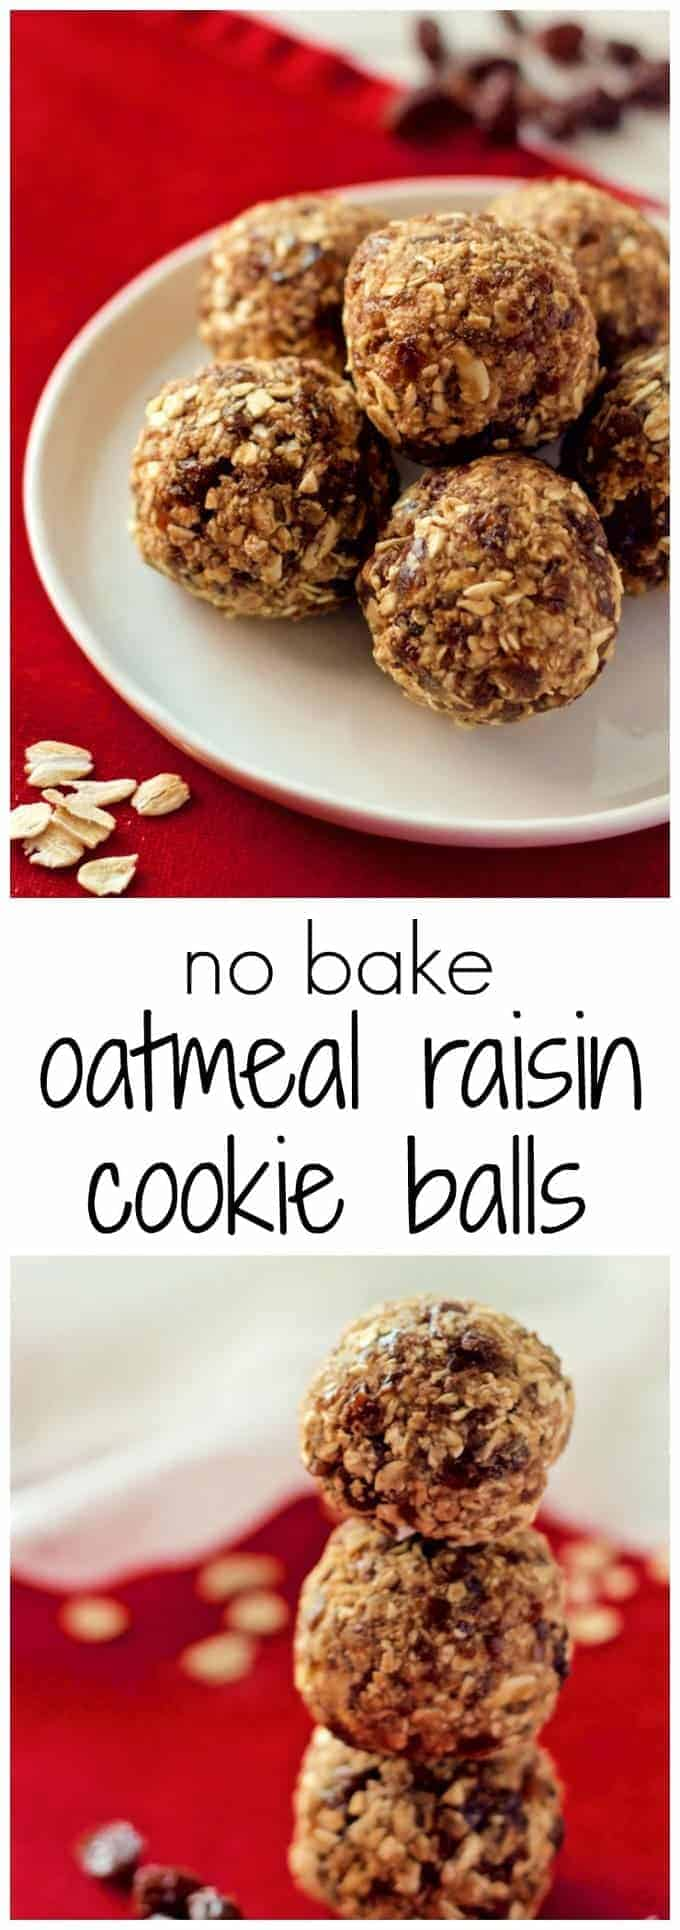 These no-bake treats taste just like a chewy oatmeal raisin cookie but are naturally sweetened and full of only wholesome ingredients!